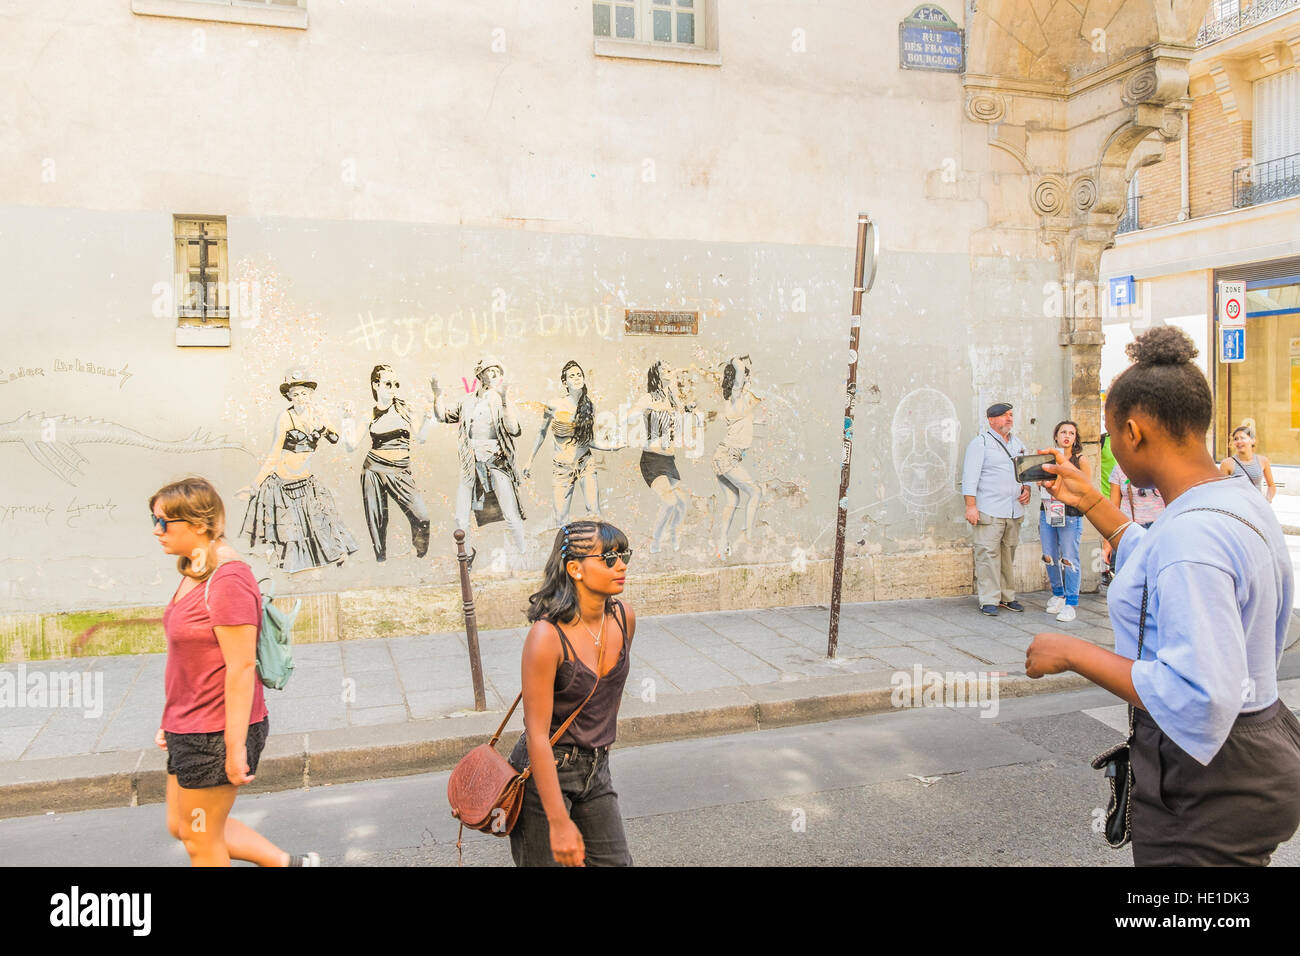 street scene in front of graffito showing dancing young people - Stock Image